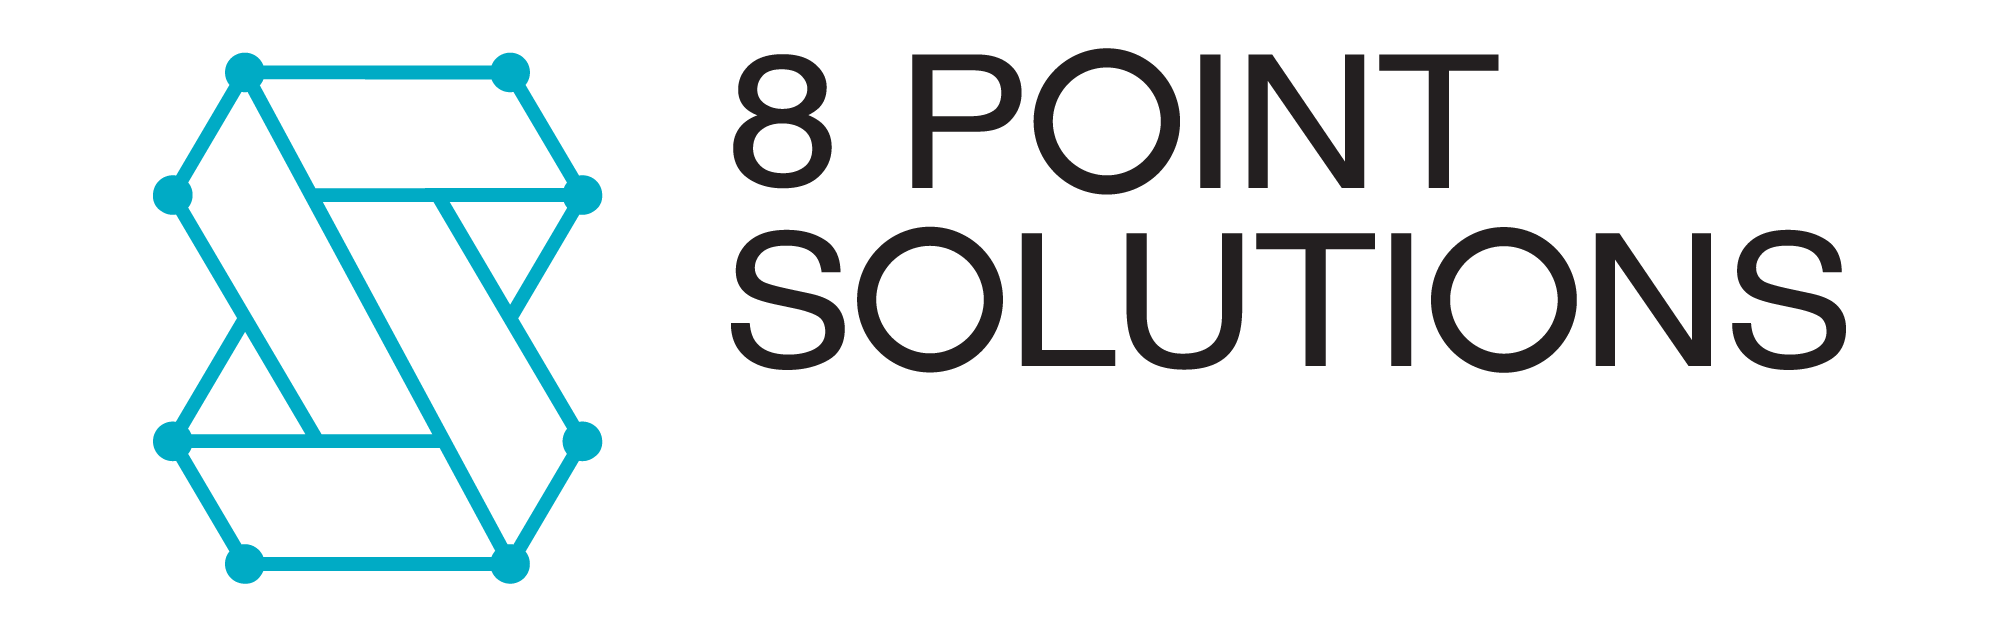 8 Point Solutions Limited